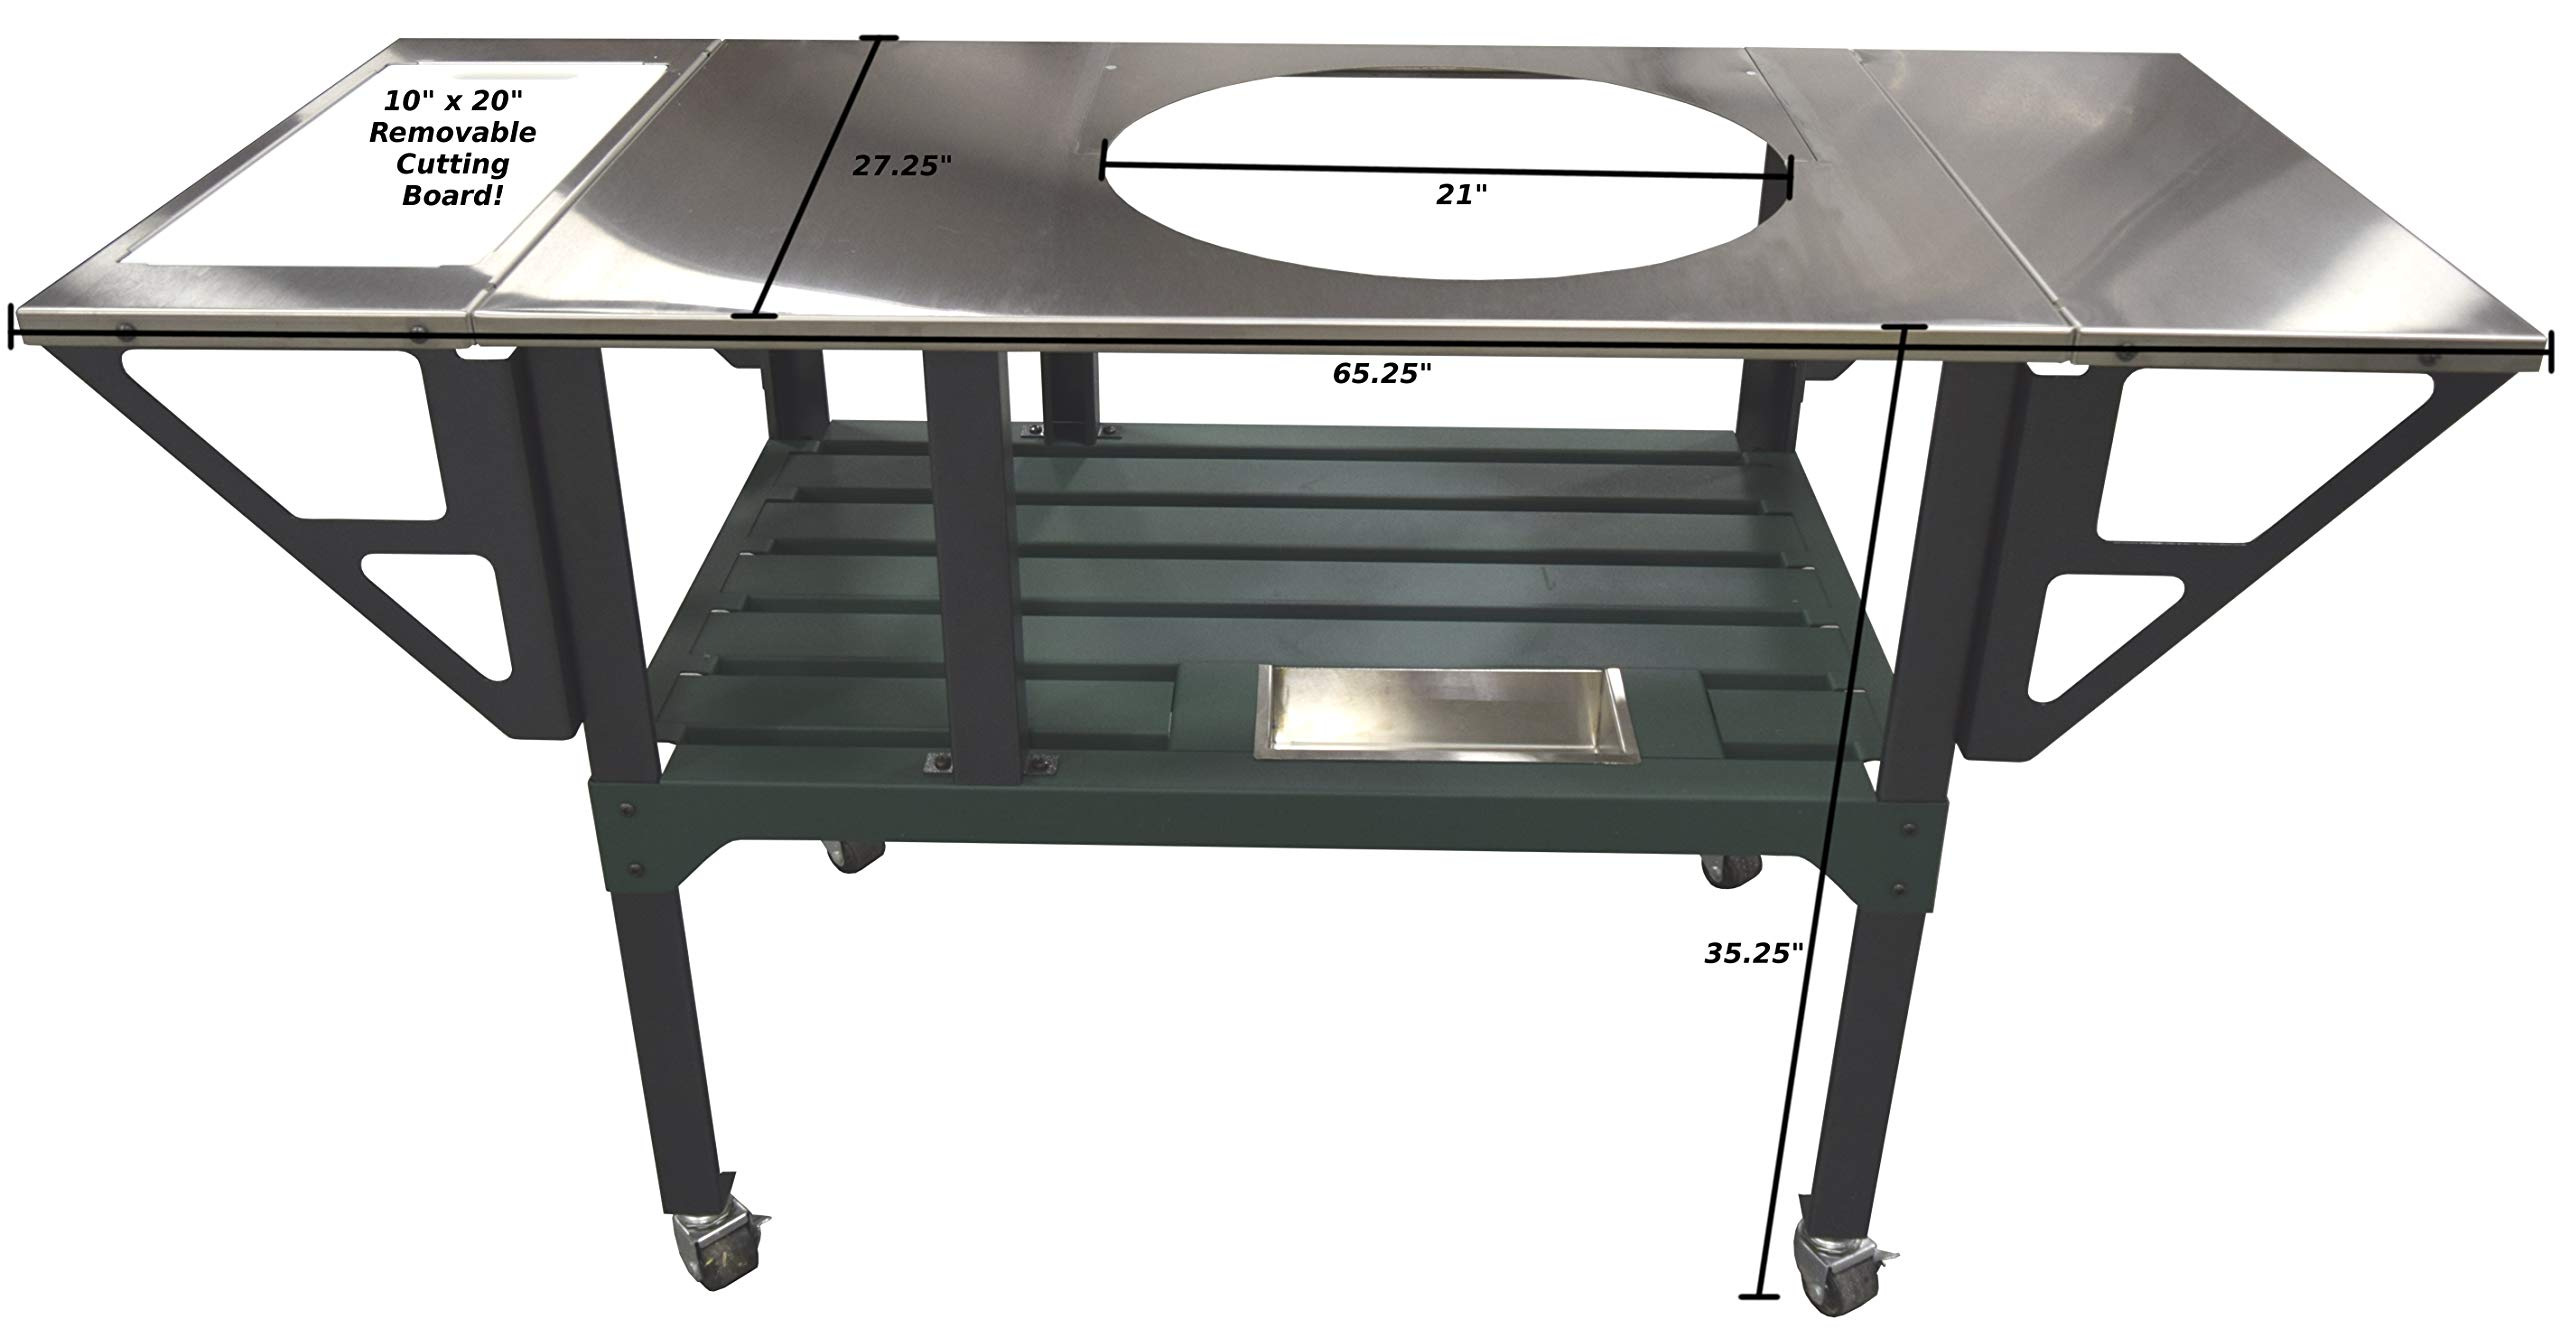 RMP Deluxe Universal Steel Grill Cart for Round Ceramic Grill, Fits a Large Big Green Egg Grill, Stainless Steel Finish Table Top, with Rotating and Locking Wheels by RMP (Image #2)